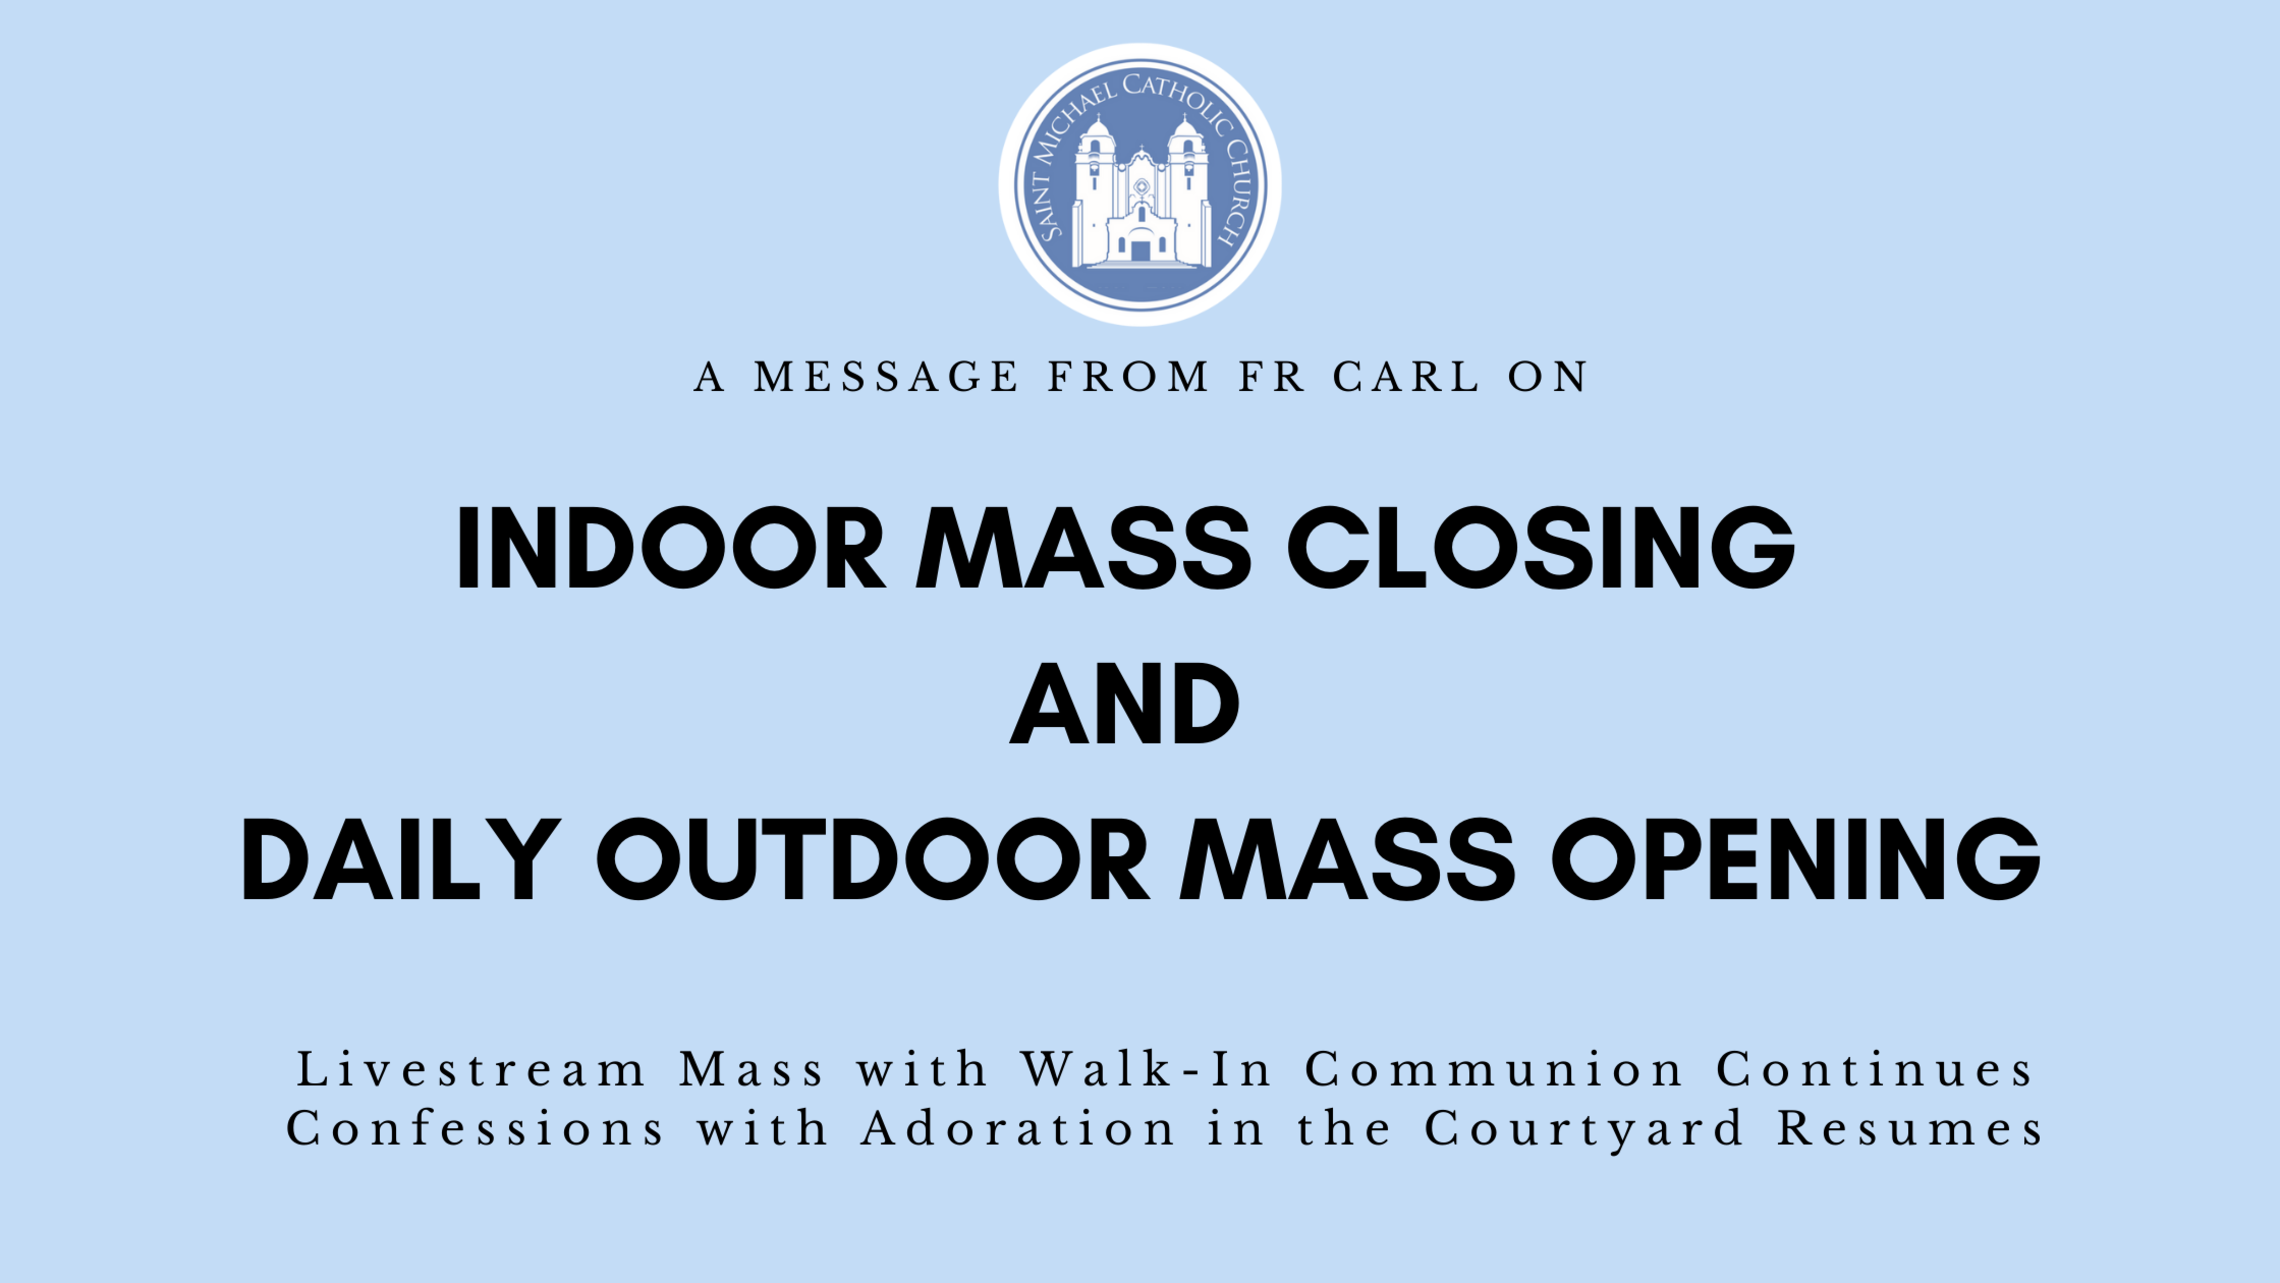 Indoor Mass Closing And Daily Outdoor Mass Opening